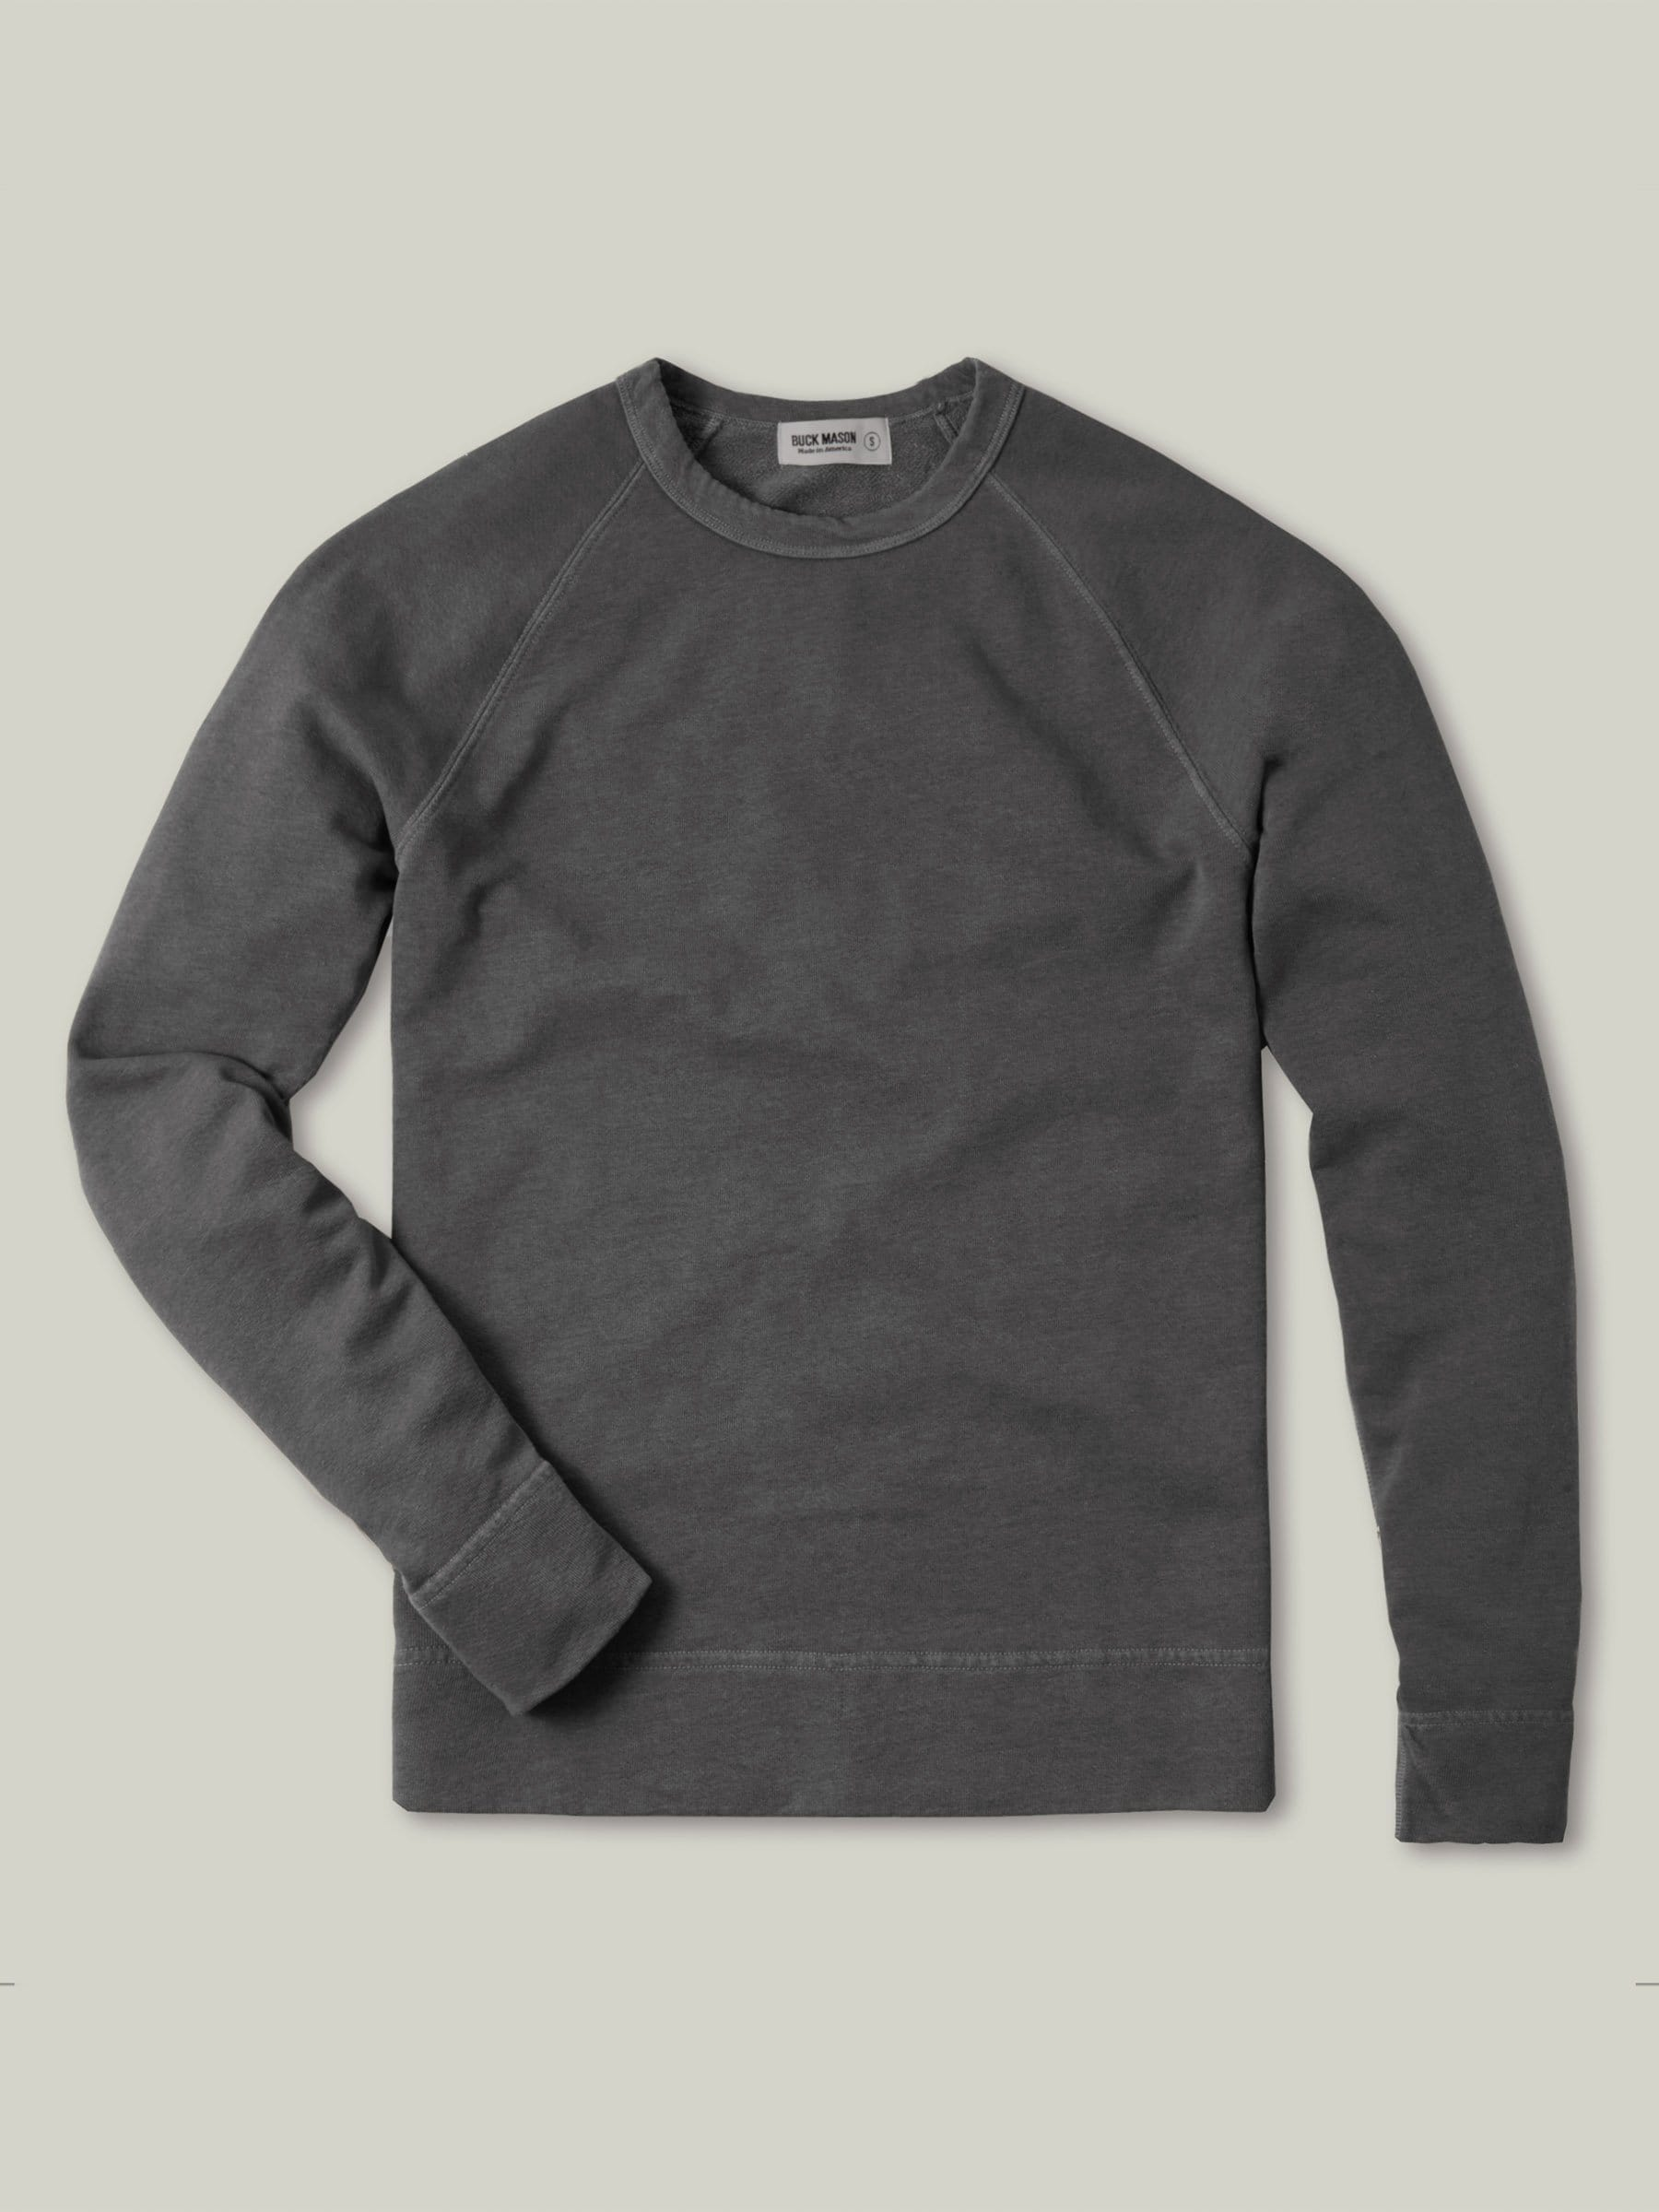 Buck Mason - Faded Black Venice Wash Vintage French Terry Raglan